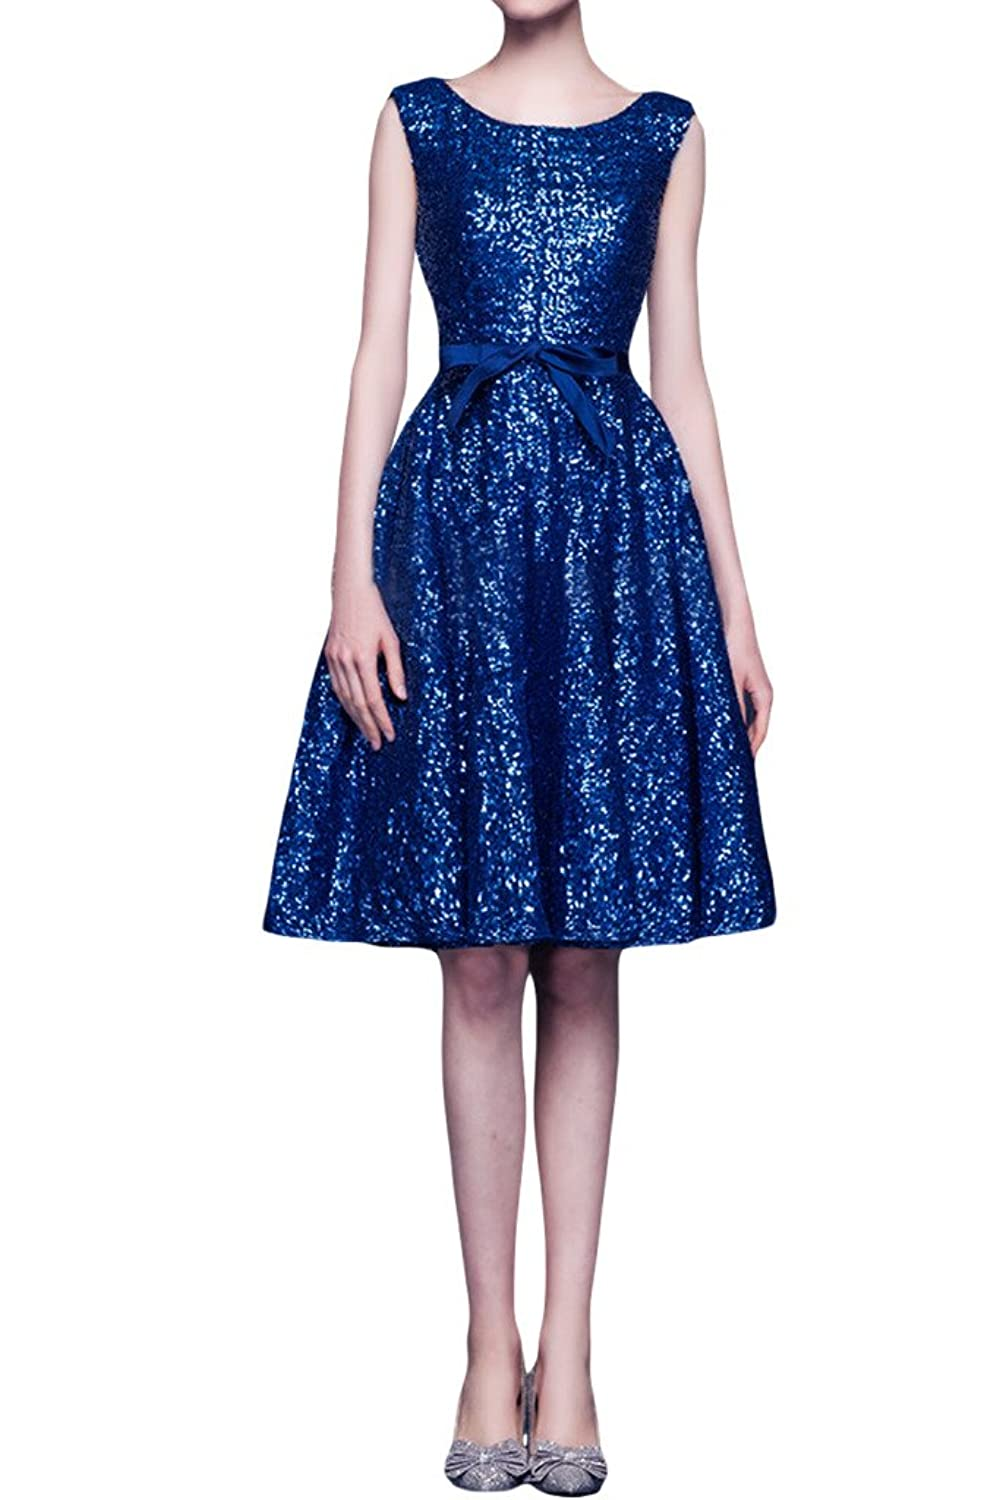 Sunvary Sequins A Line Strapless Bridesmaid Dresses Occasions Dresses Party Gowns